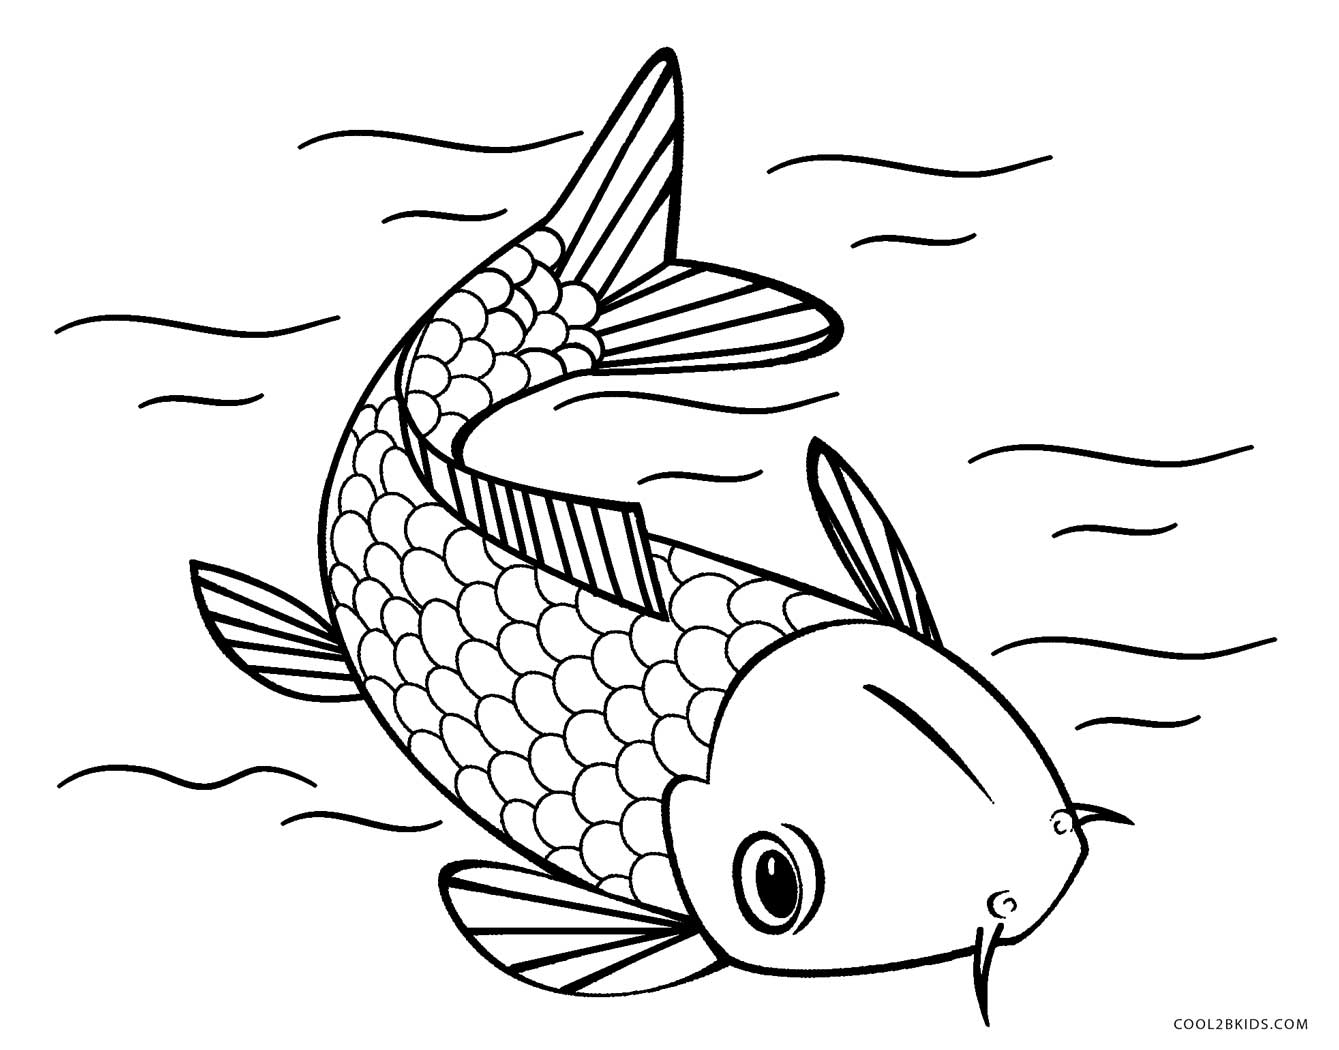 1339x1050 Japanese Koi Fish Coloring Pages Blooming Lotus And Coy